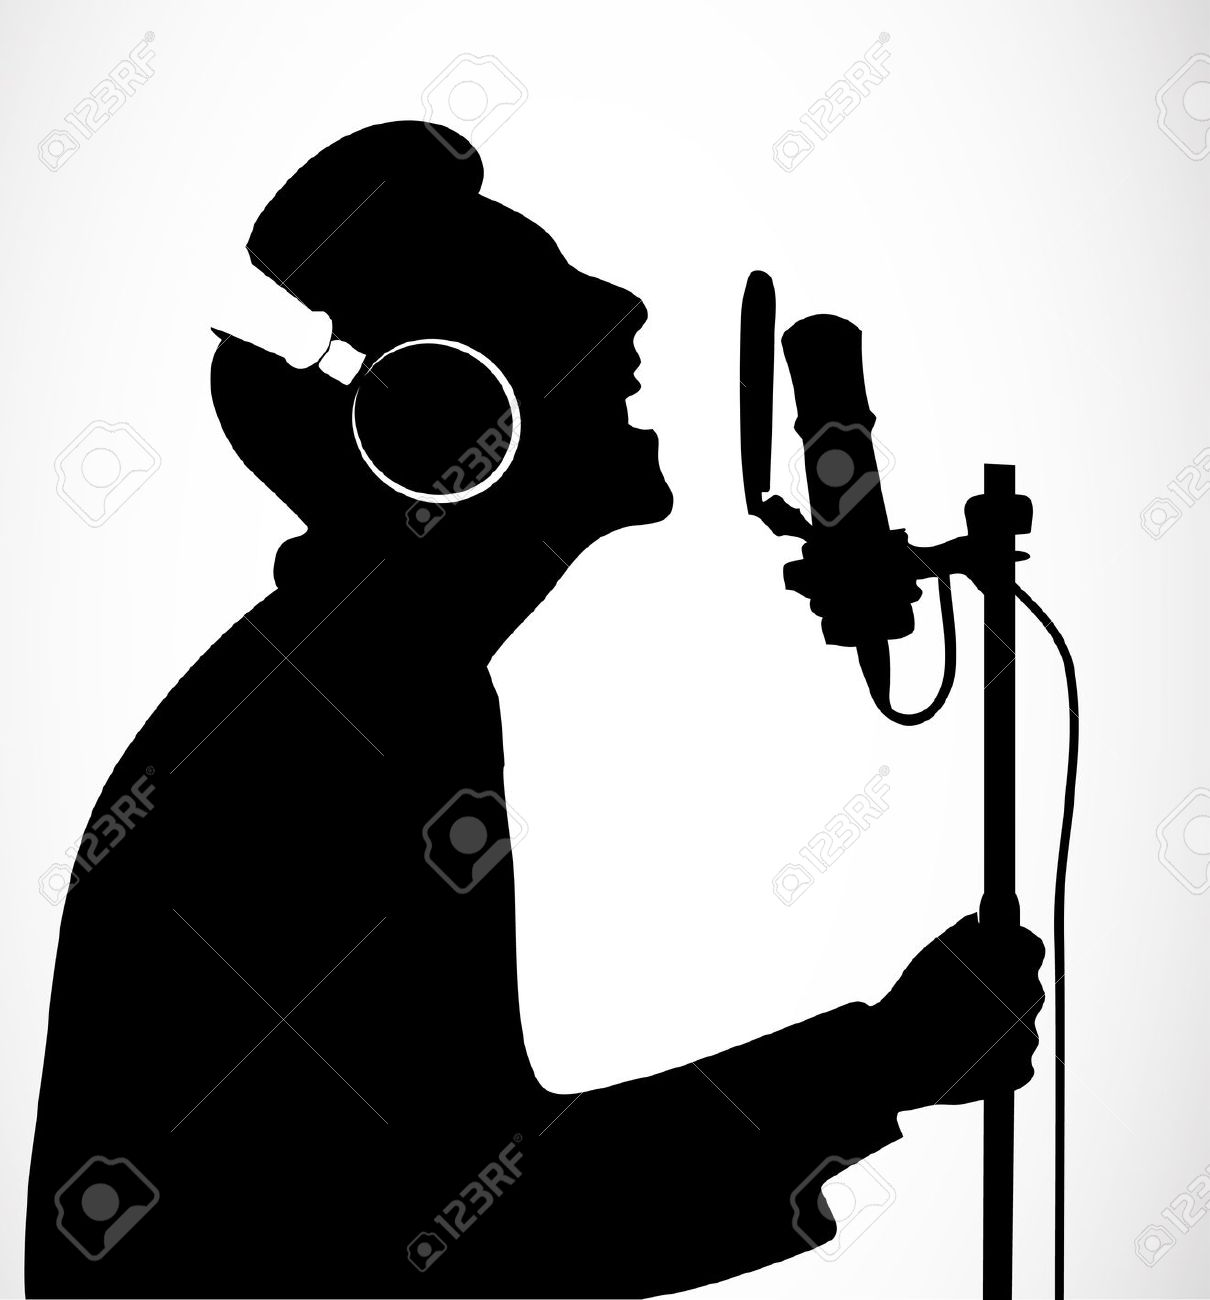 Microphone clipart solo singer Singer  clipart #girlsingingcolor_pw clipart